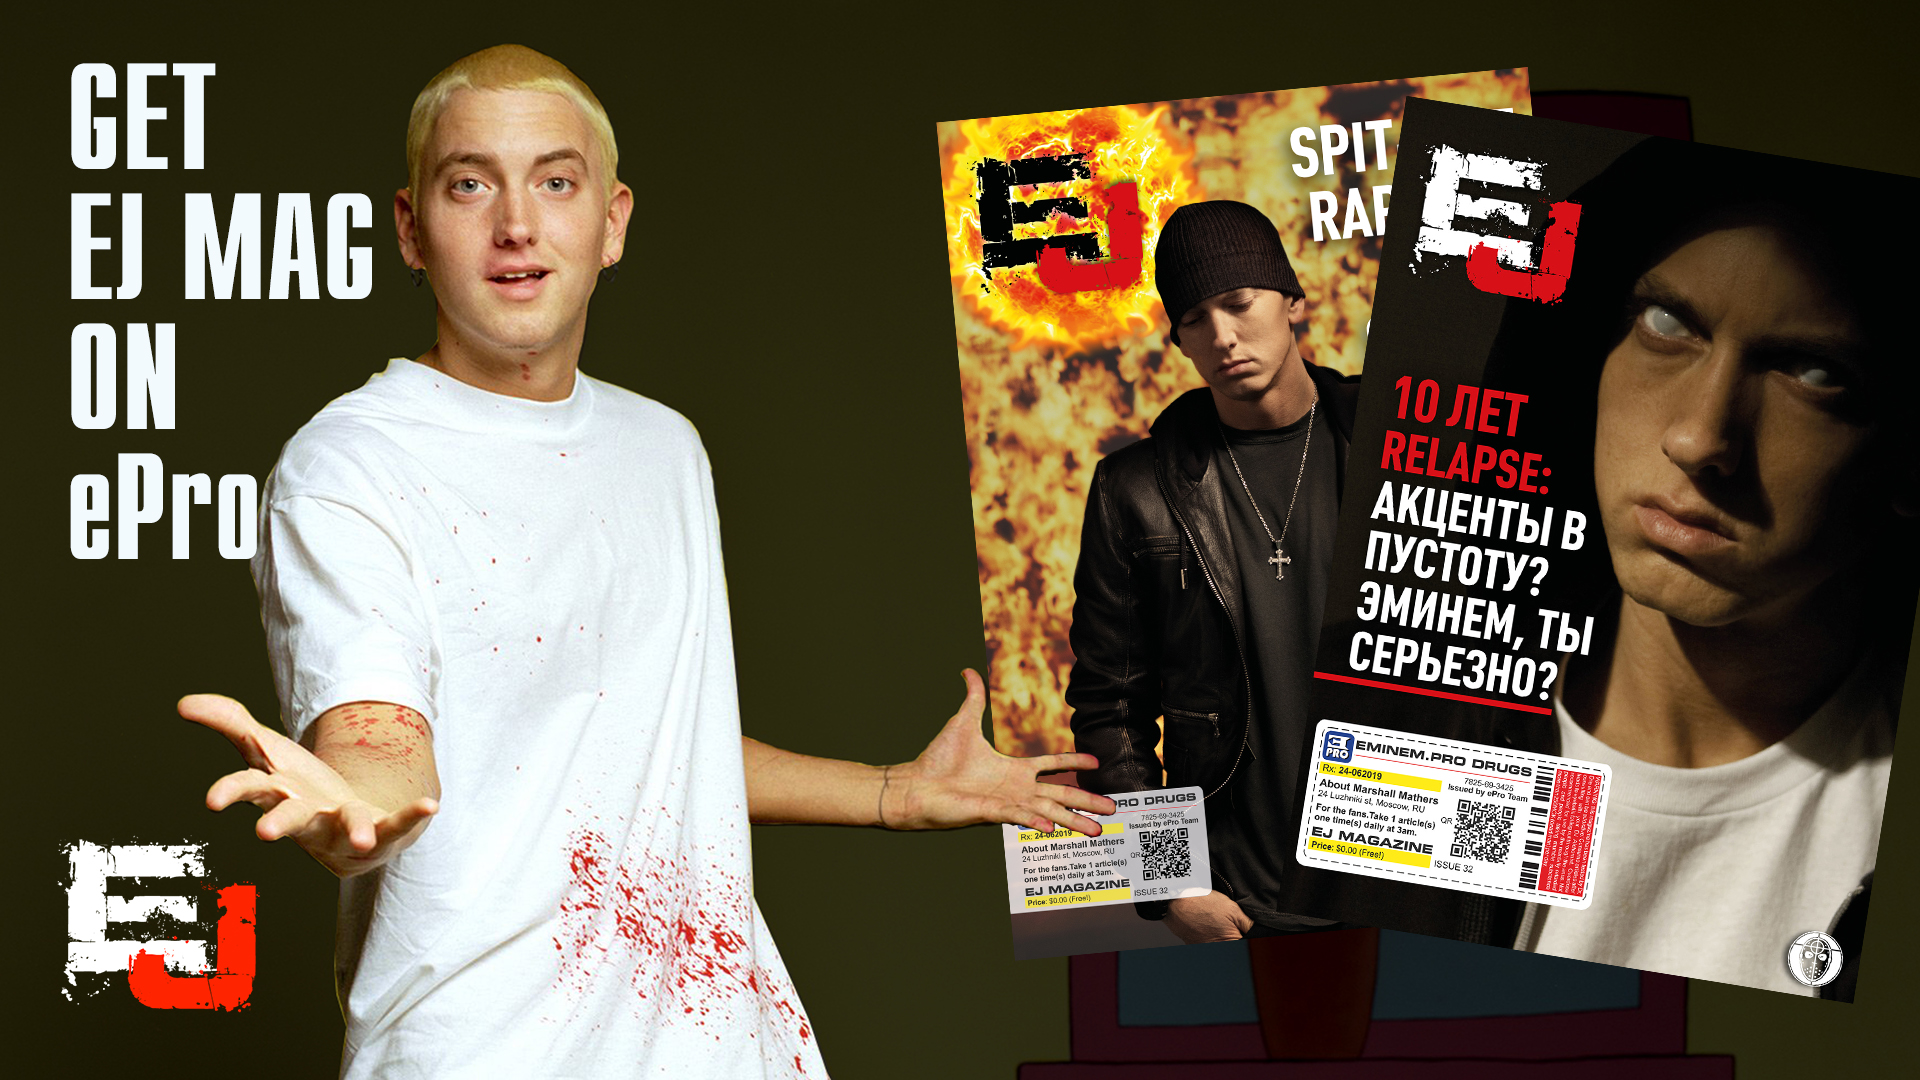 "Exclusive Eminem.Pro article from our editor for the twentieth anniversary of one of Eminem's greatest works - ""The Slim Shady LP"", which brought him worldwide recognition."